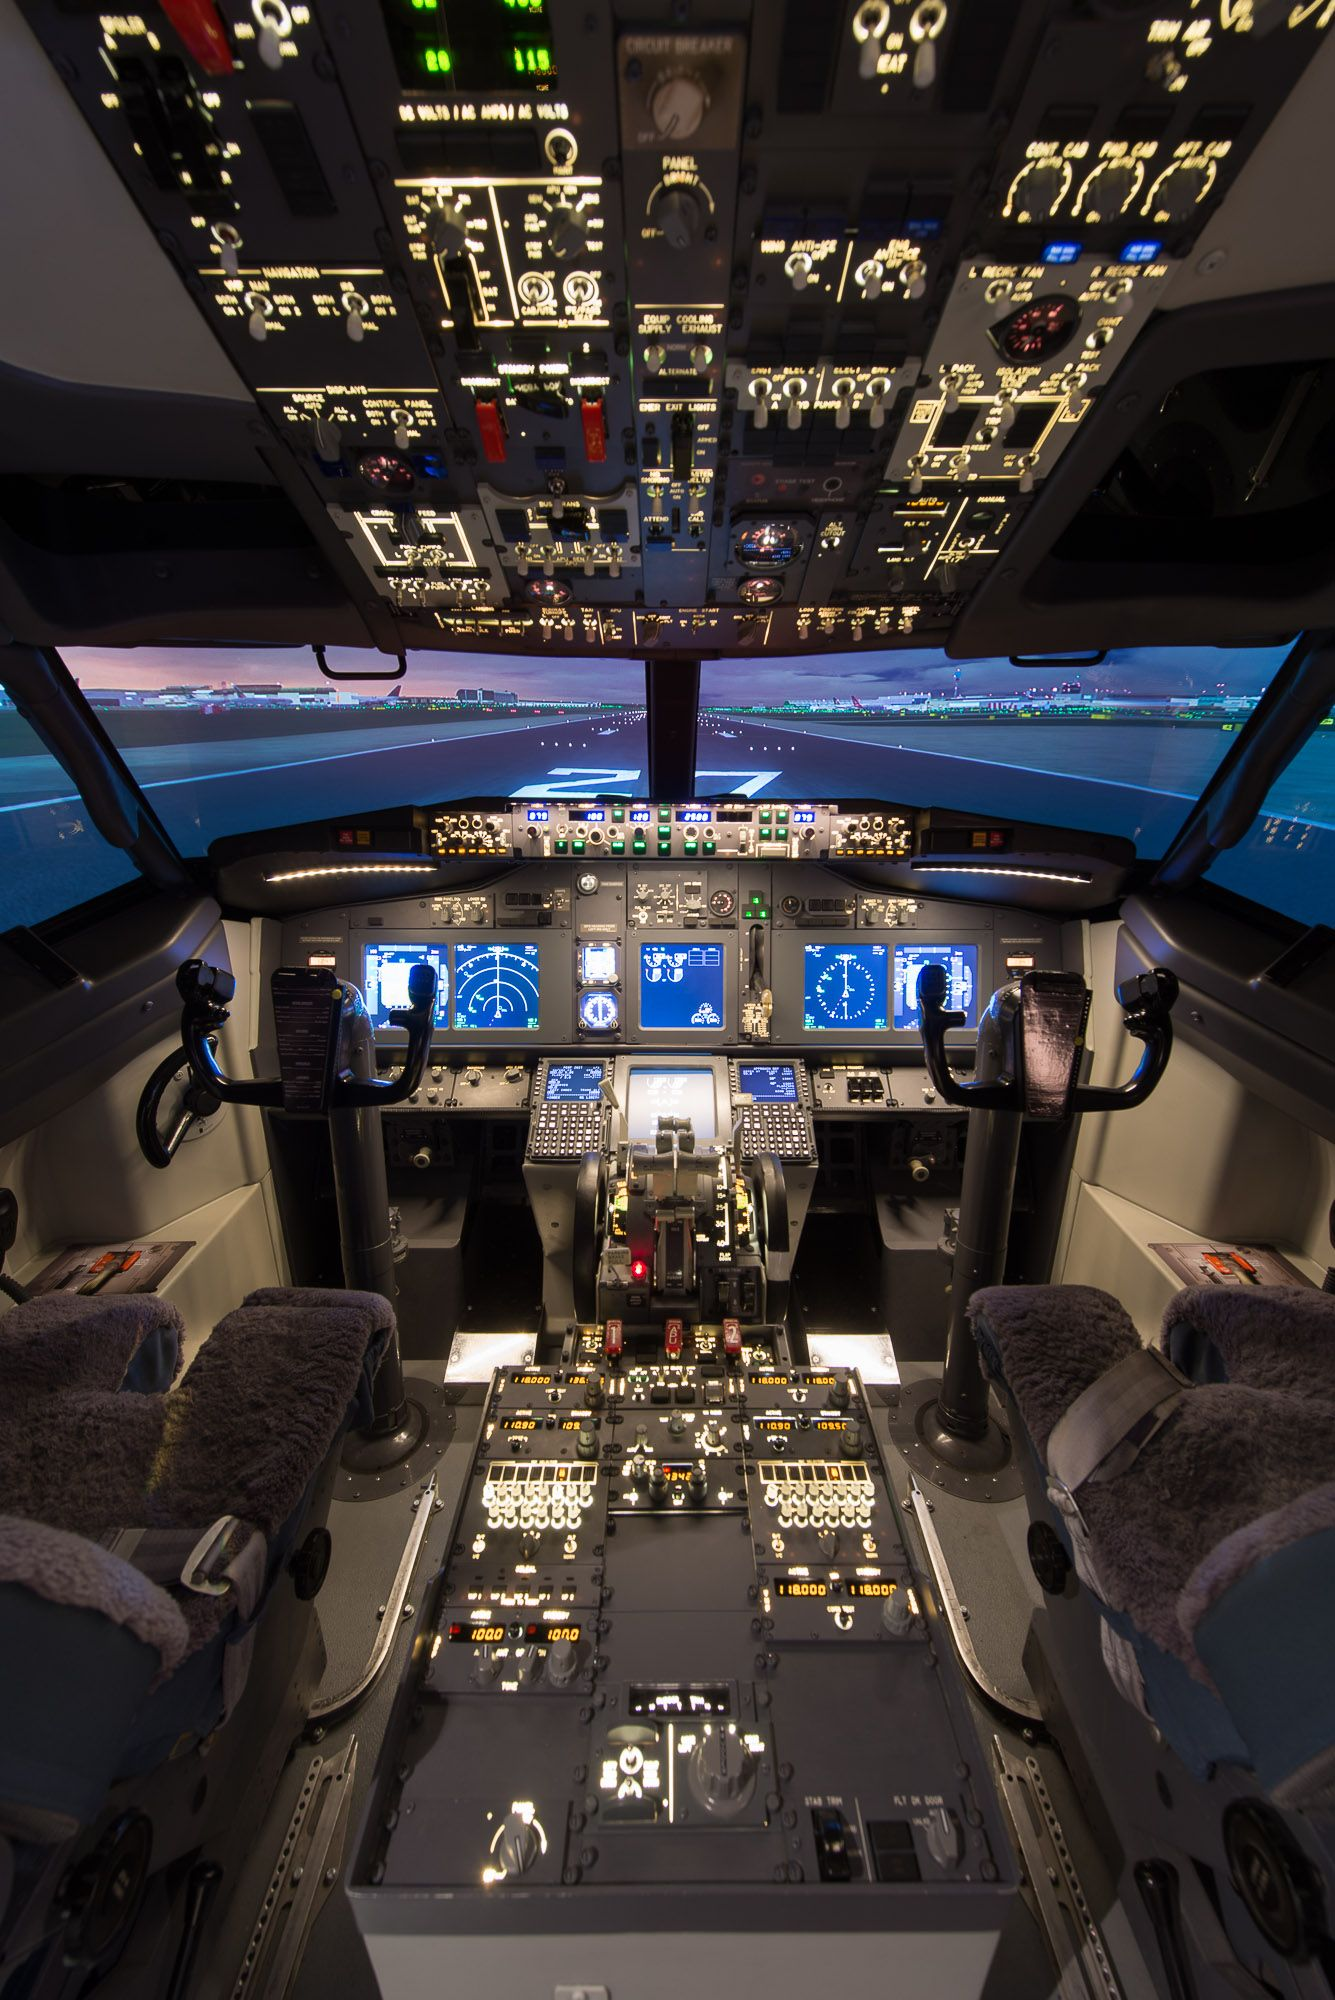 The Stunning Boeing 737 800 Flight Simulator Based At Cambridge